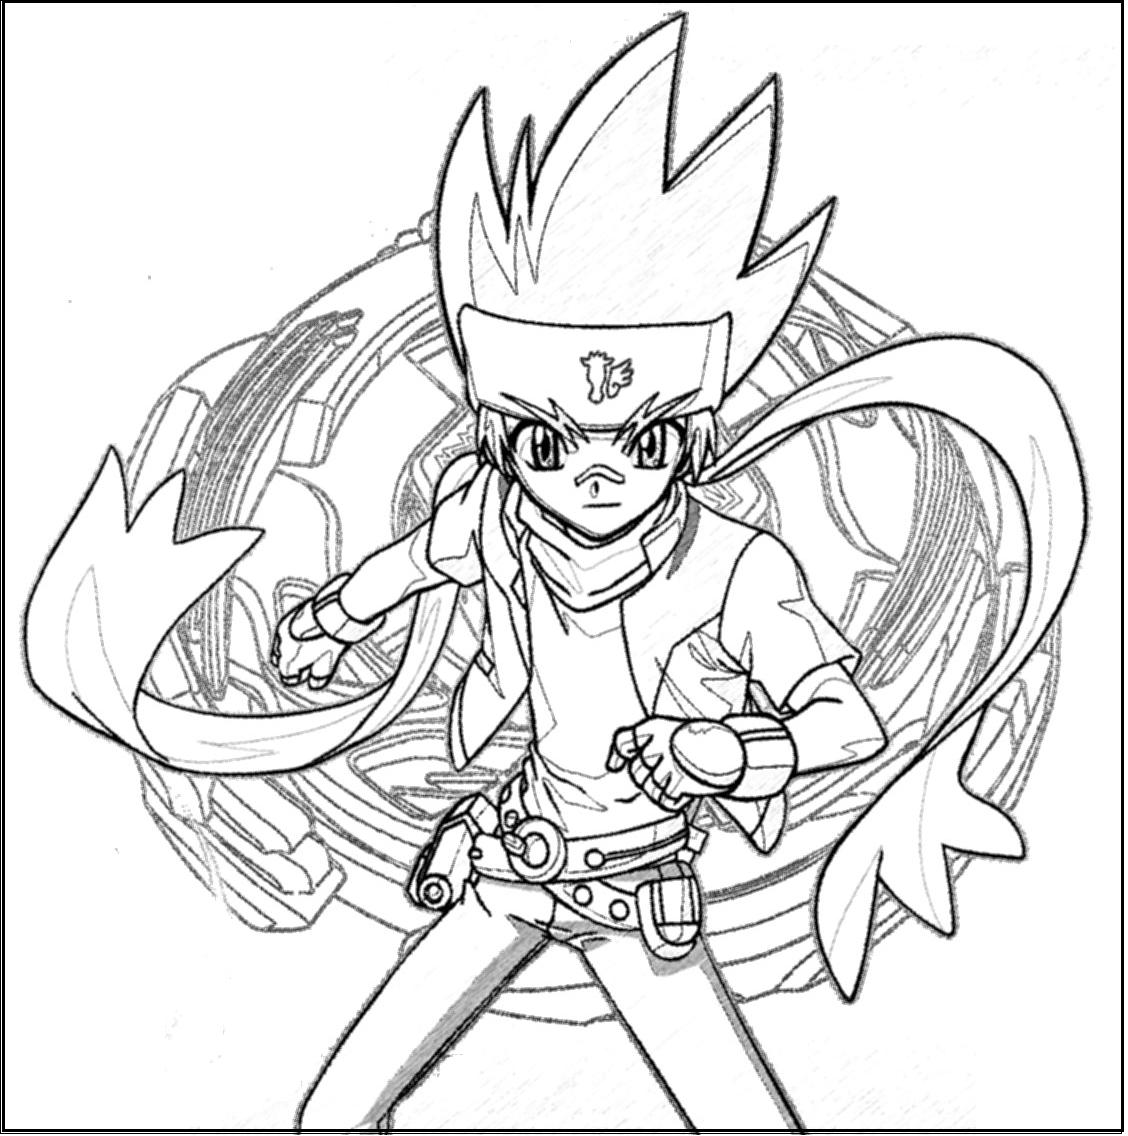 beyblade coloring pages gingka - photo#8